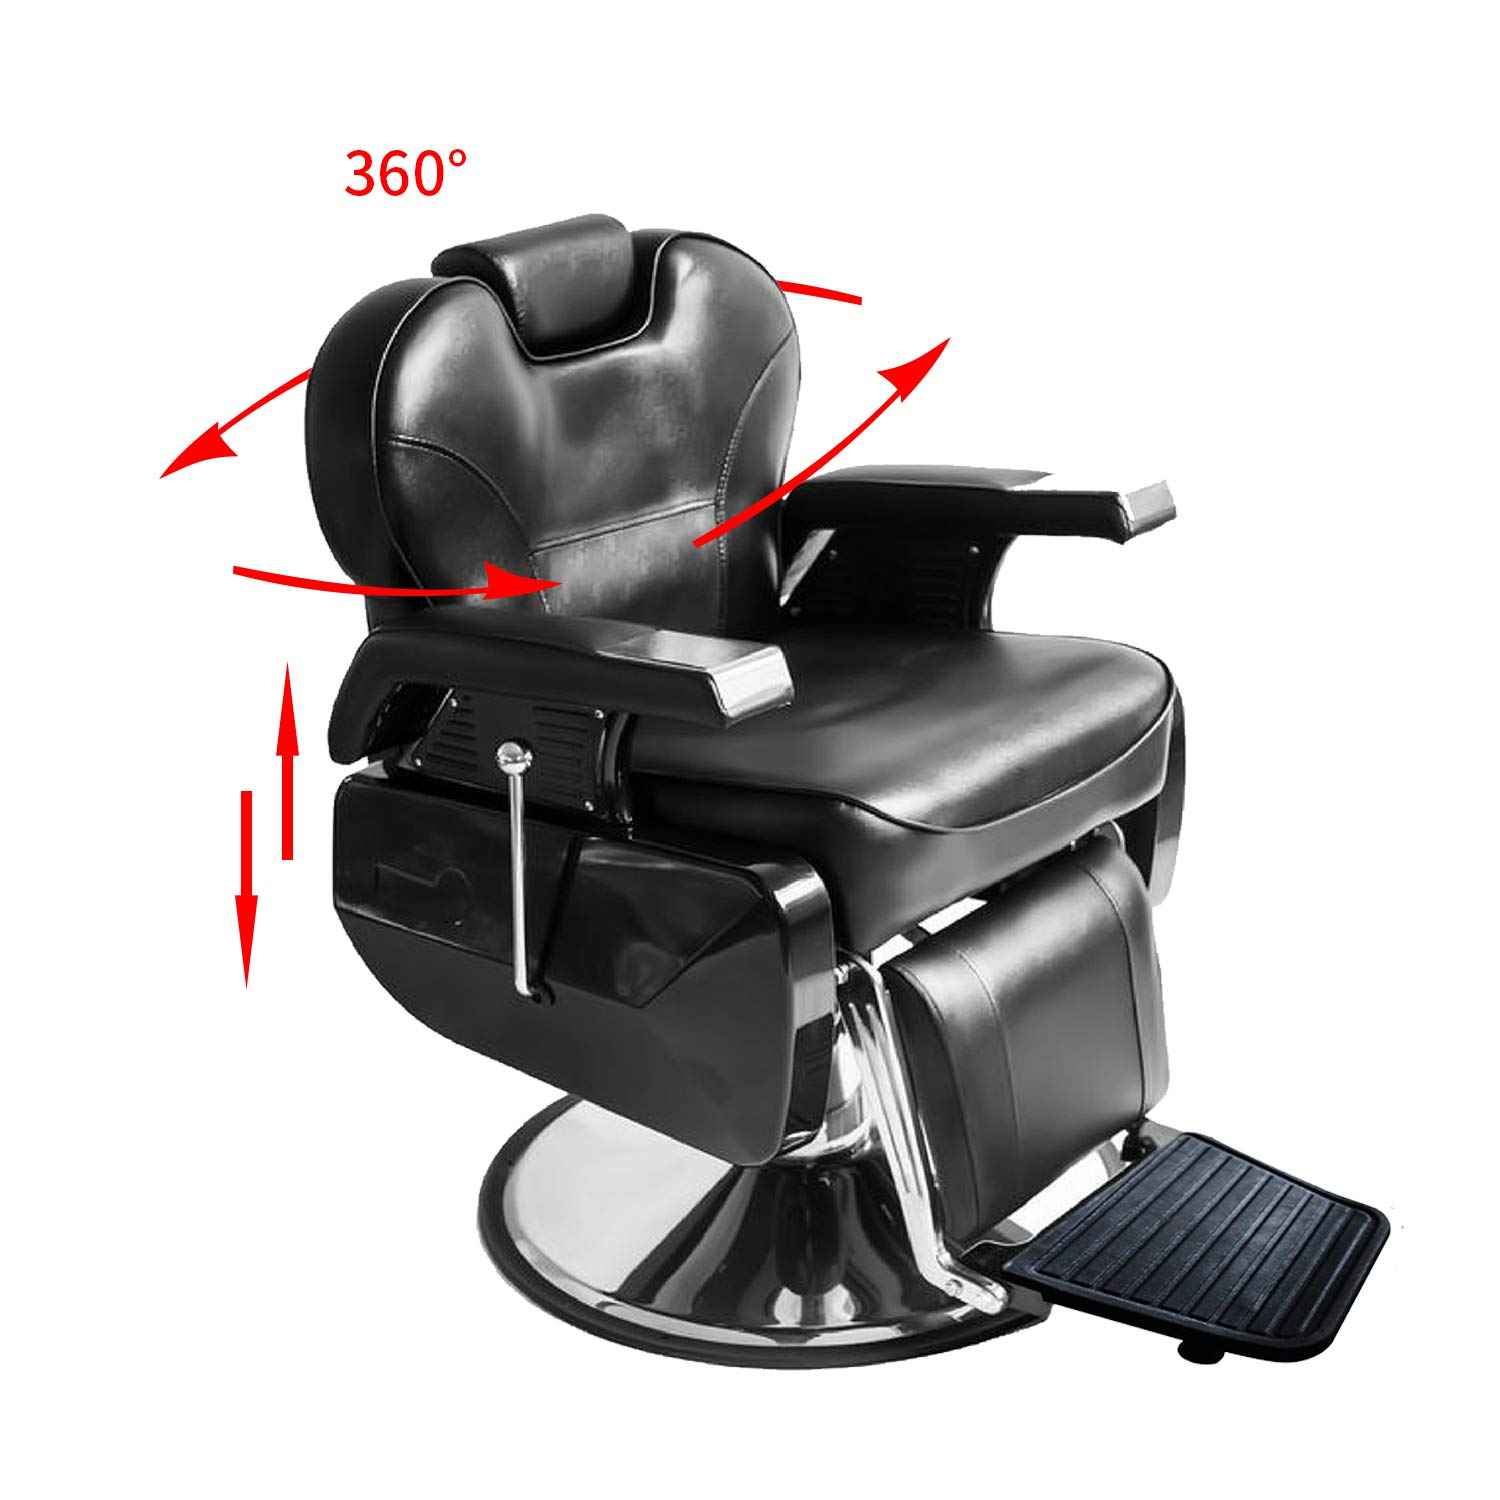 Fine Amazon Com Hyd Parts All Purpose Hydraulic Recline Barber Short Links Chair Design For Home Short Linksinfo